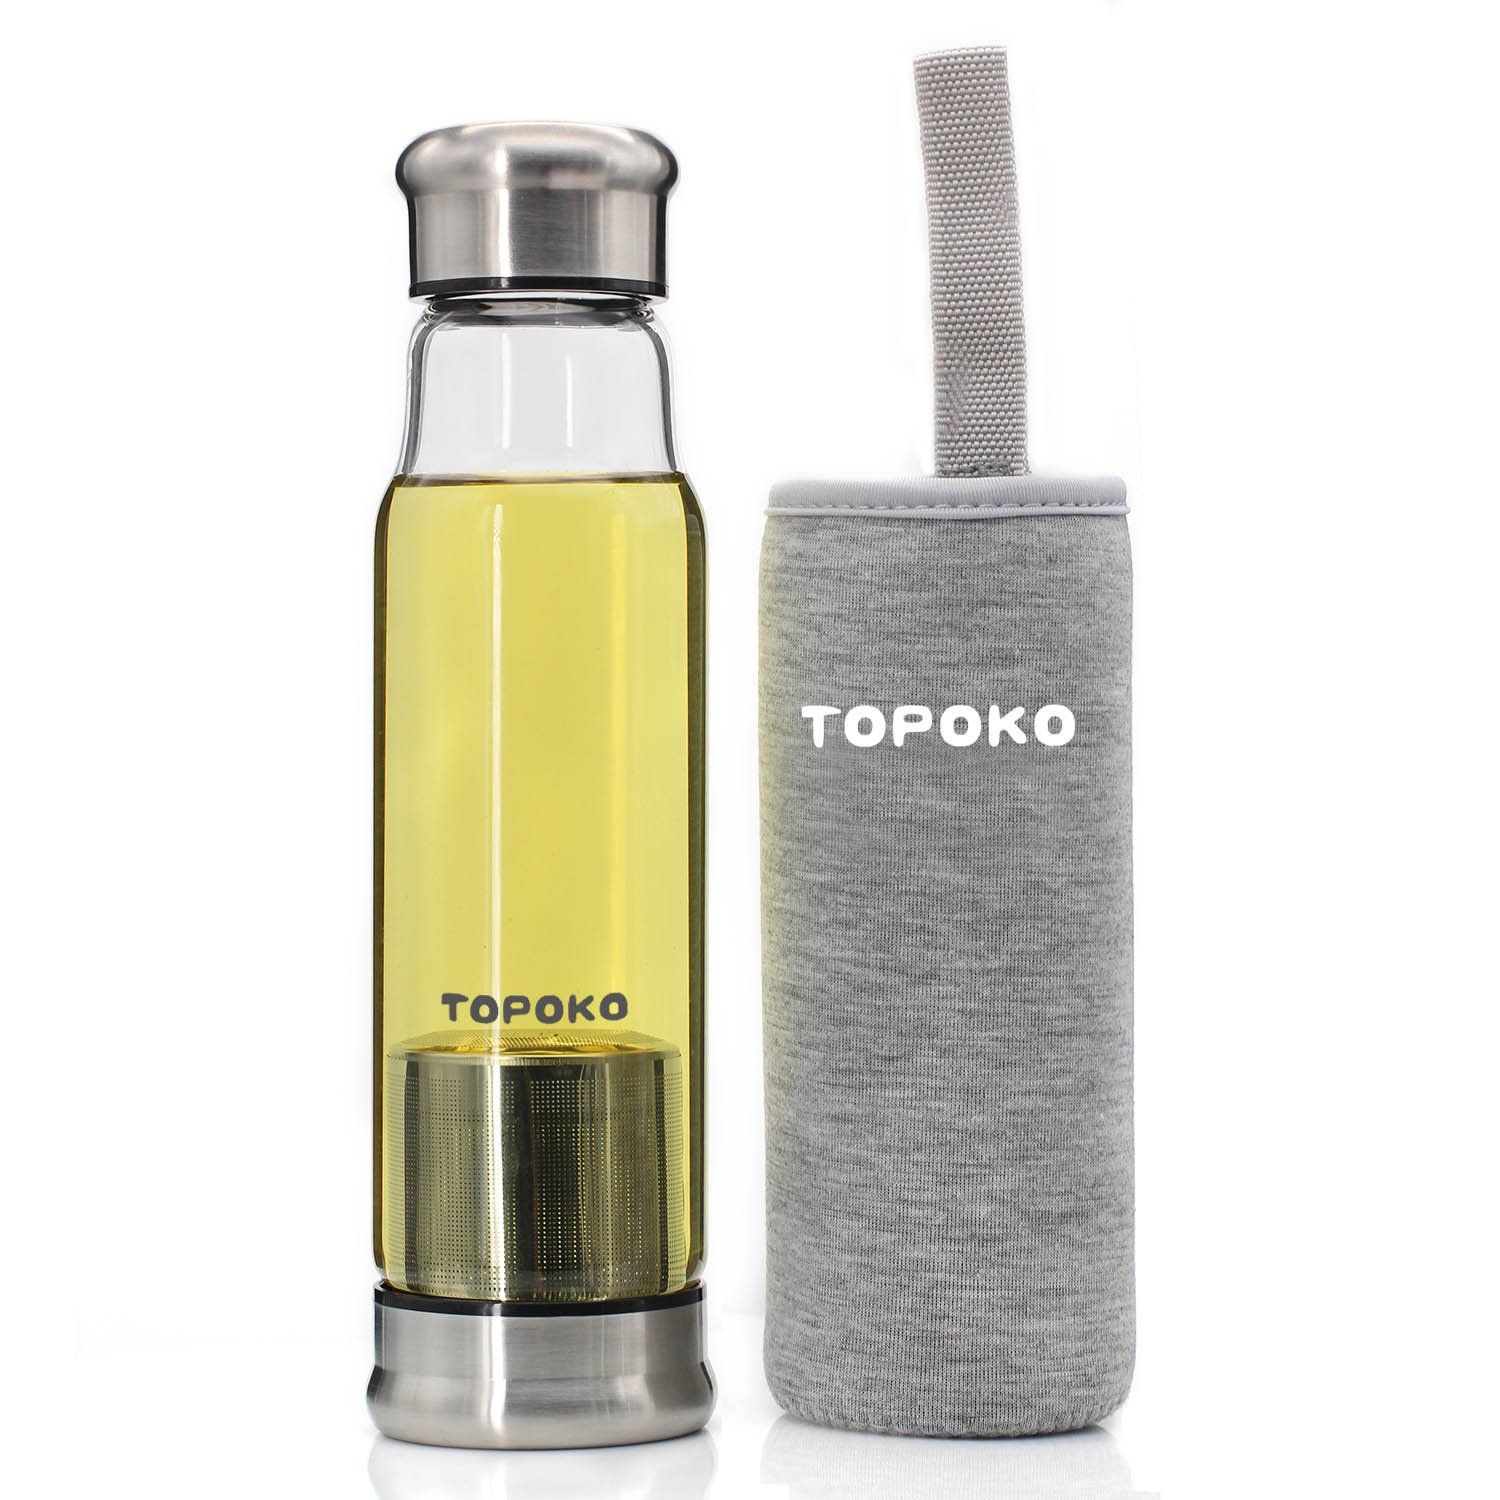 TOPOKO 18.5 Oz Glass Water Bottle-Extra Strong Crystal Glass Bottle With Portable Nylon Sleeve Handmade Leak Proof With Tea infuser (Grey)